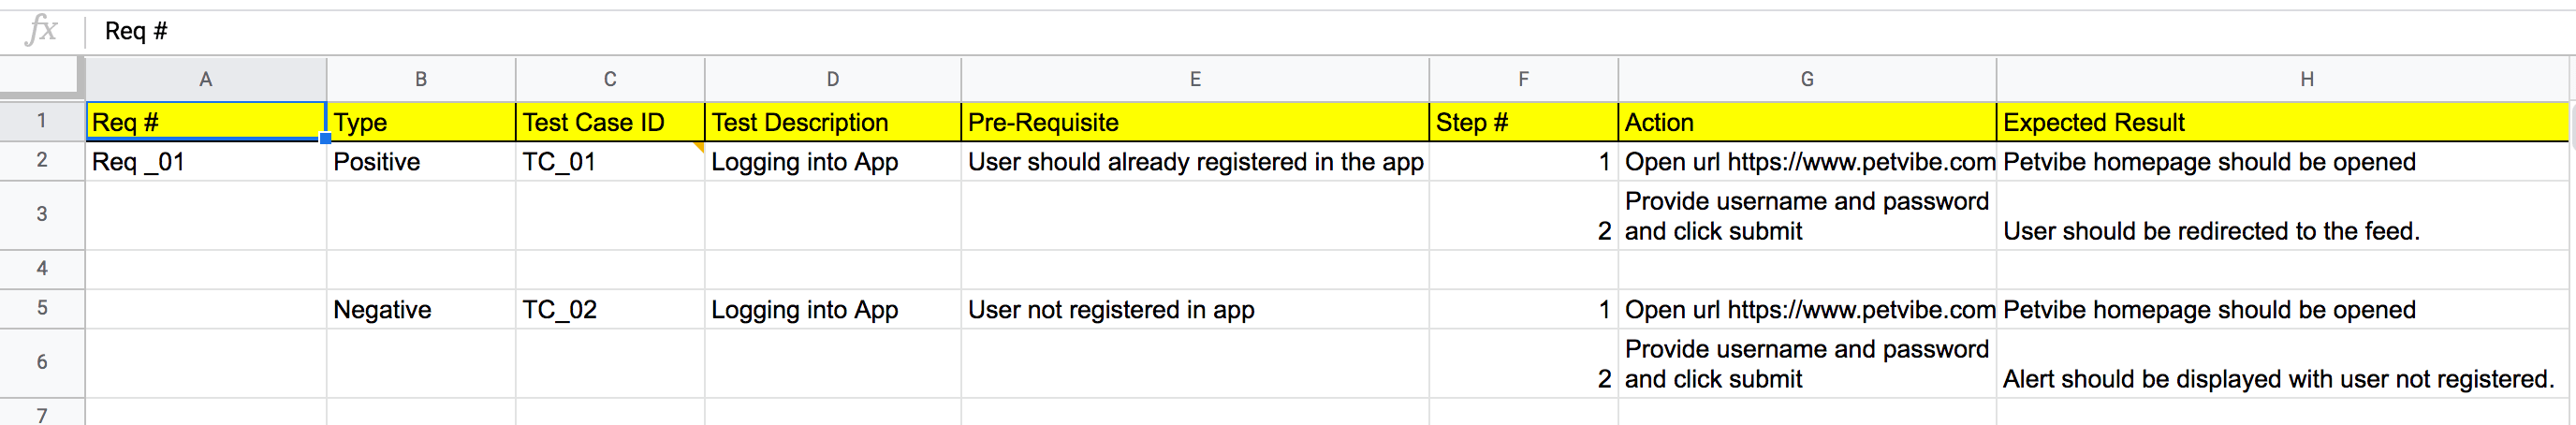 A spreadsheet showing an example of a quality assurance component testing approach.